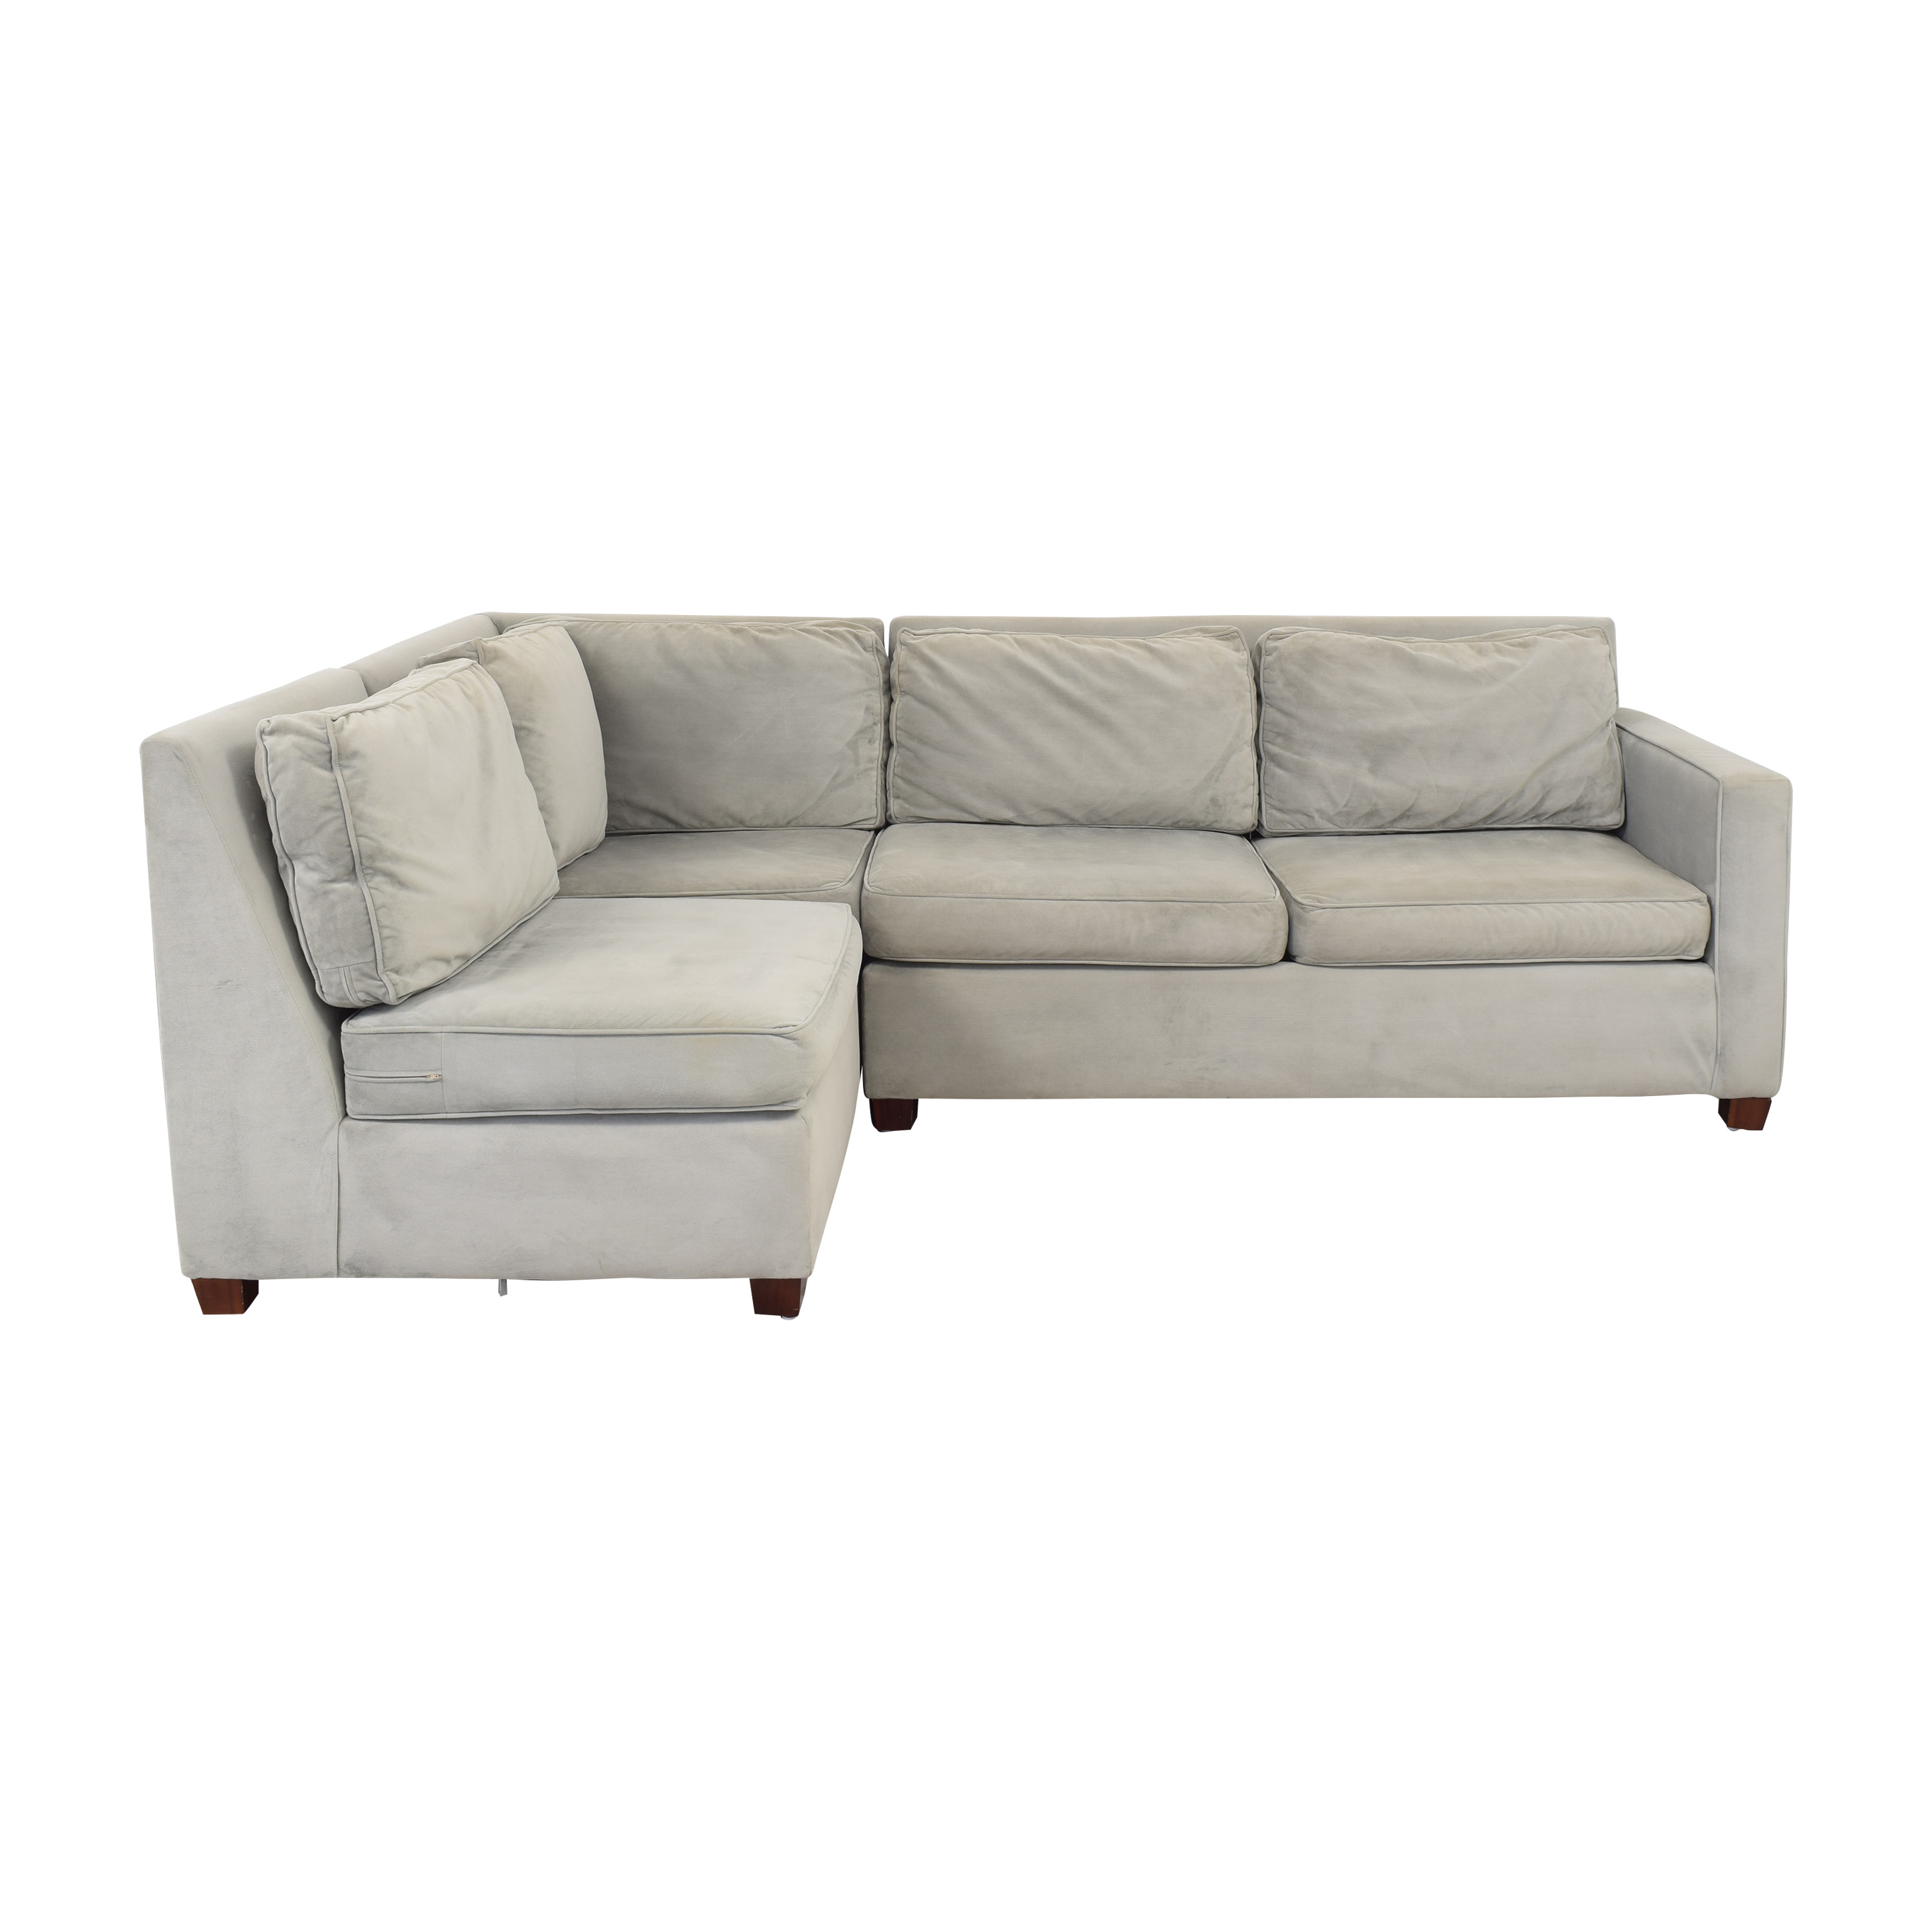 West Elm West Elm Henry Sectional Sofa pa